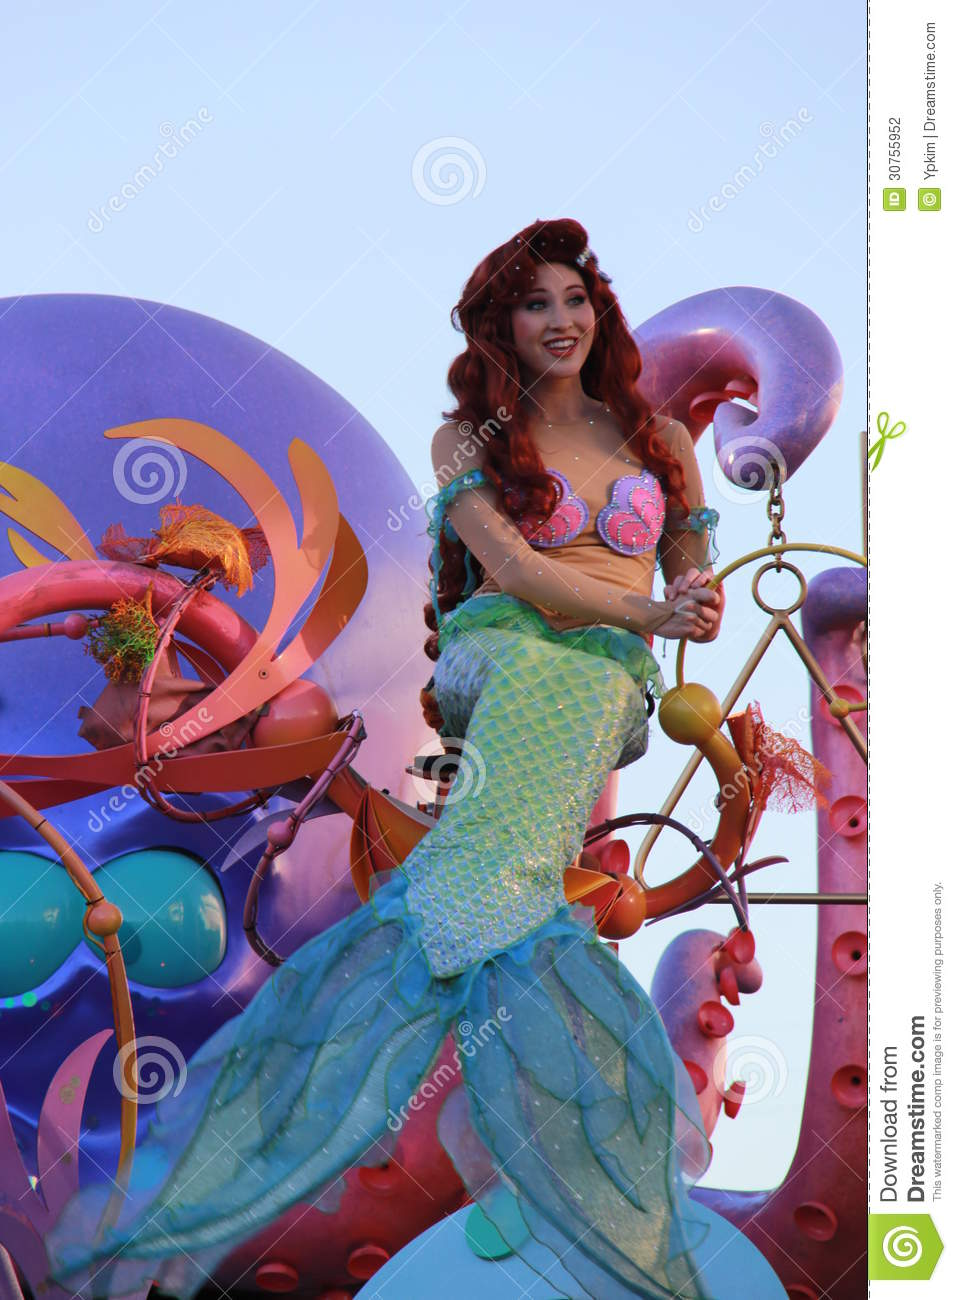 Disney princess ariel editorial photography image of download disney princess ariel editorial photography image of entertainment 30755952 altavistaventures Image collections